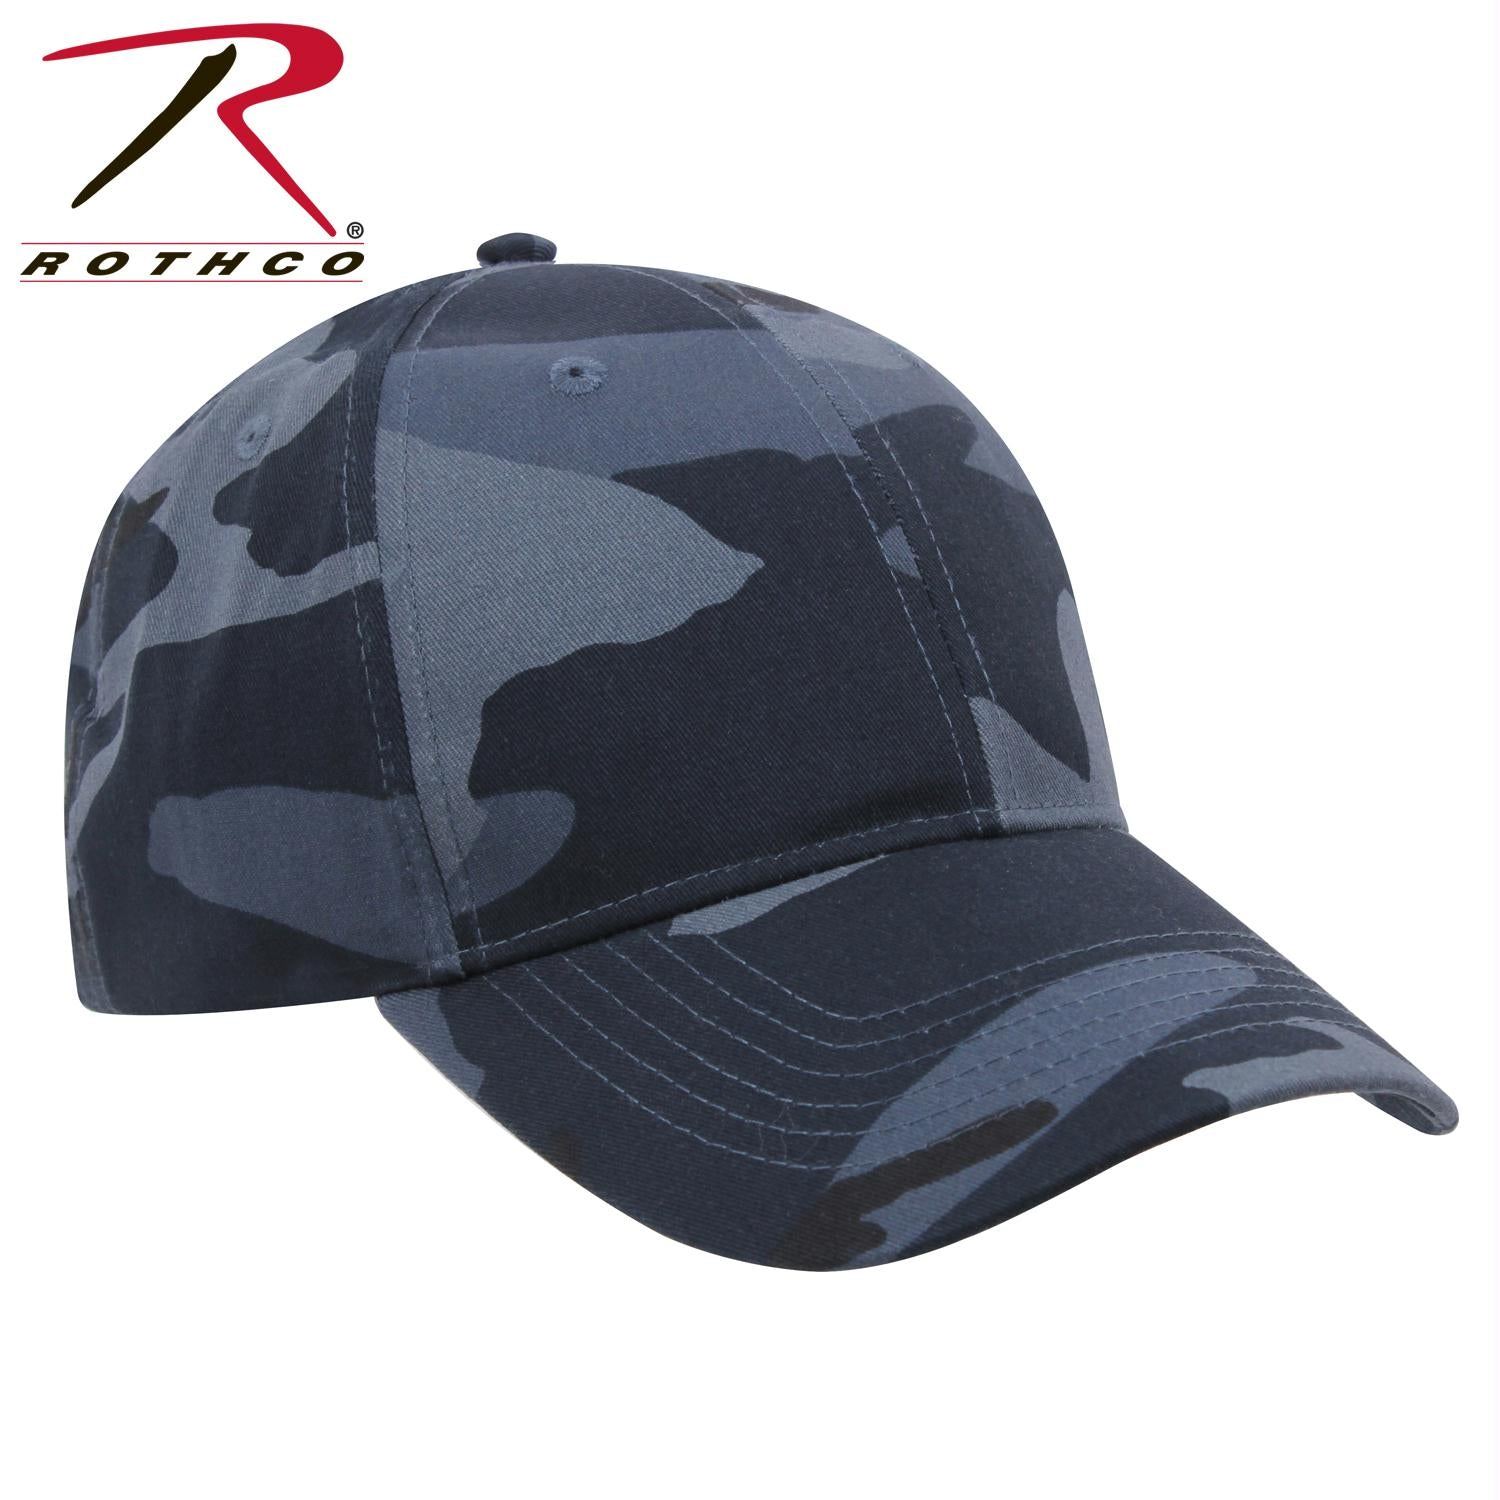 Rothco Supreme Camo Low Profile Cap - Midnight Blue Camo / One Size